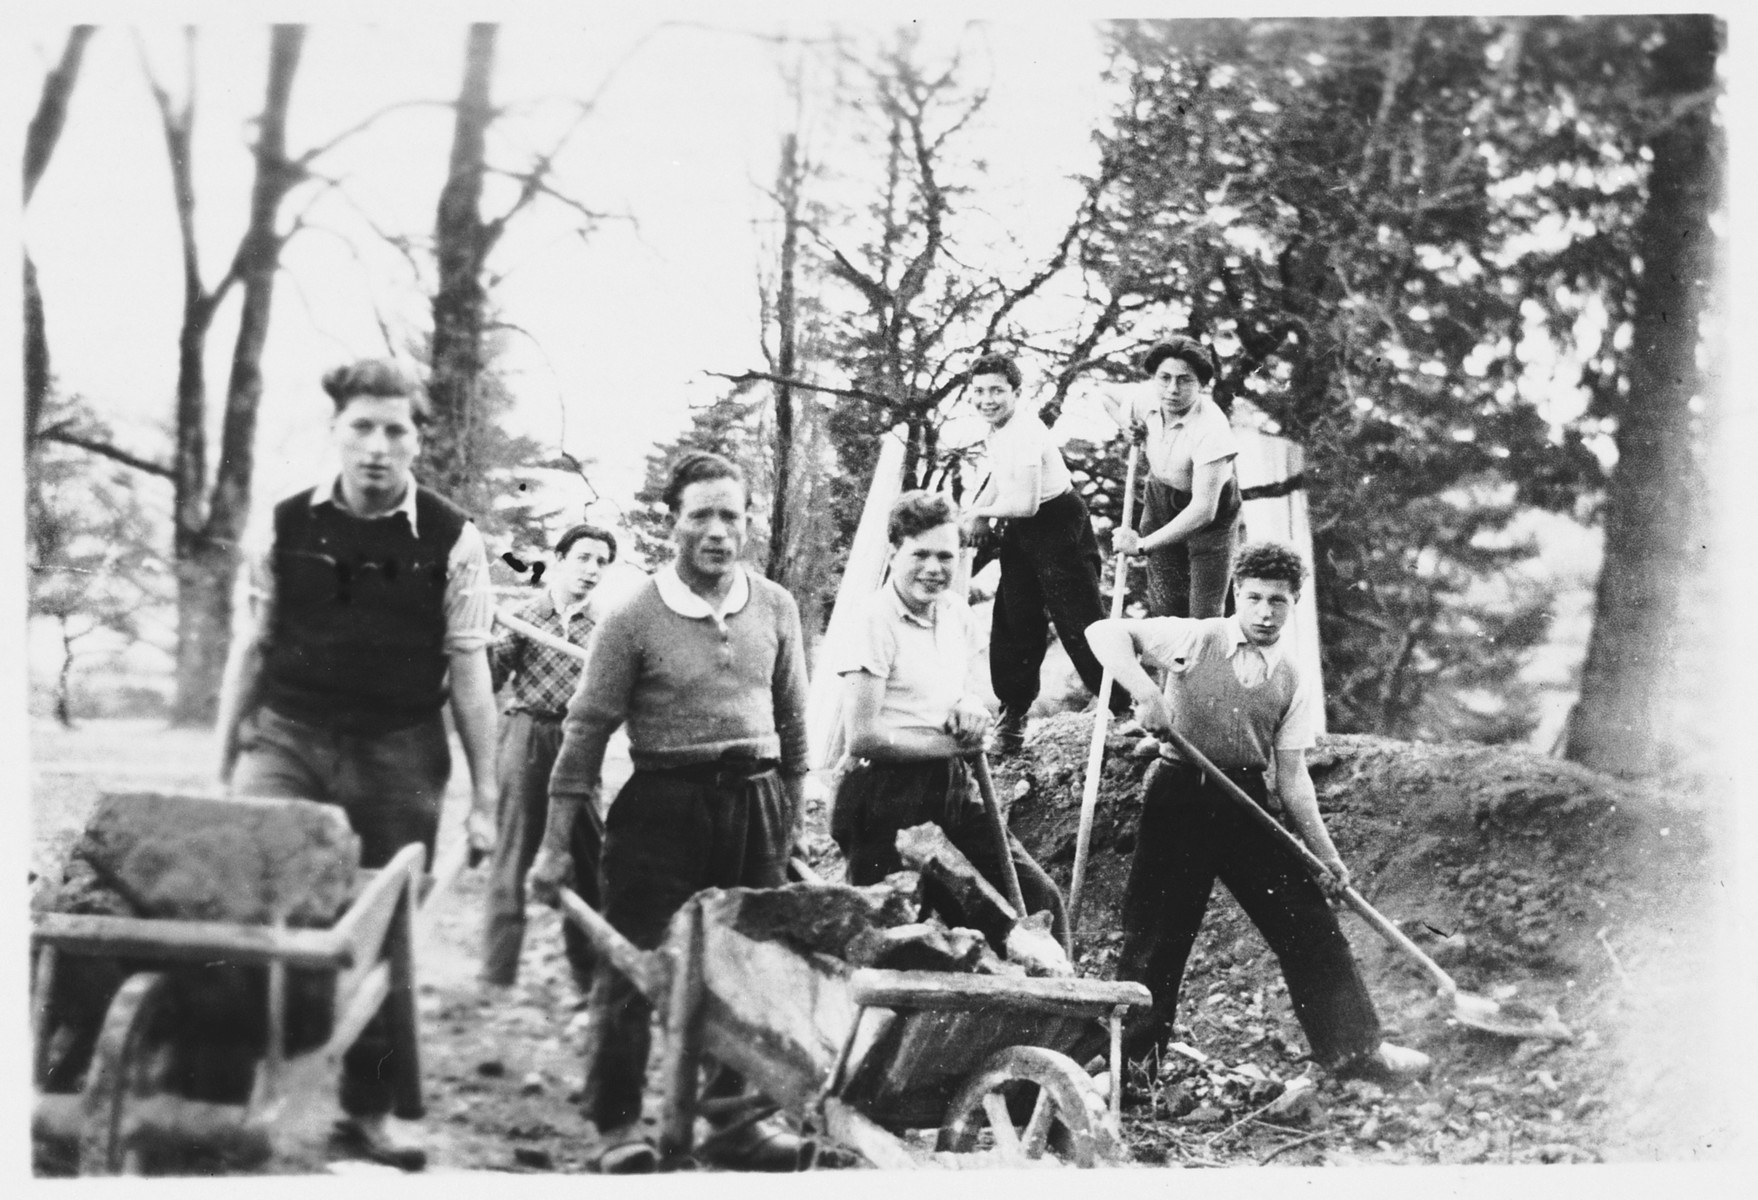 A group of Jewish refugee youth work outside with hoes, rakes and wheelbarrows at the Masgelier children's home.